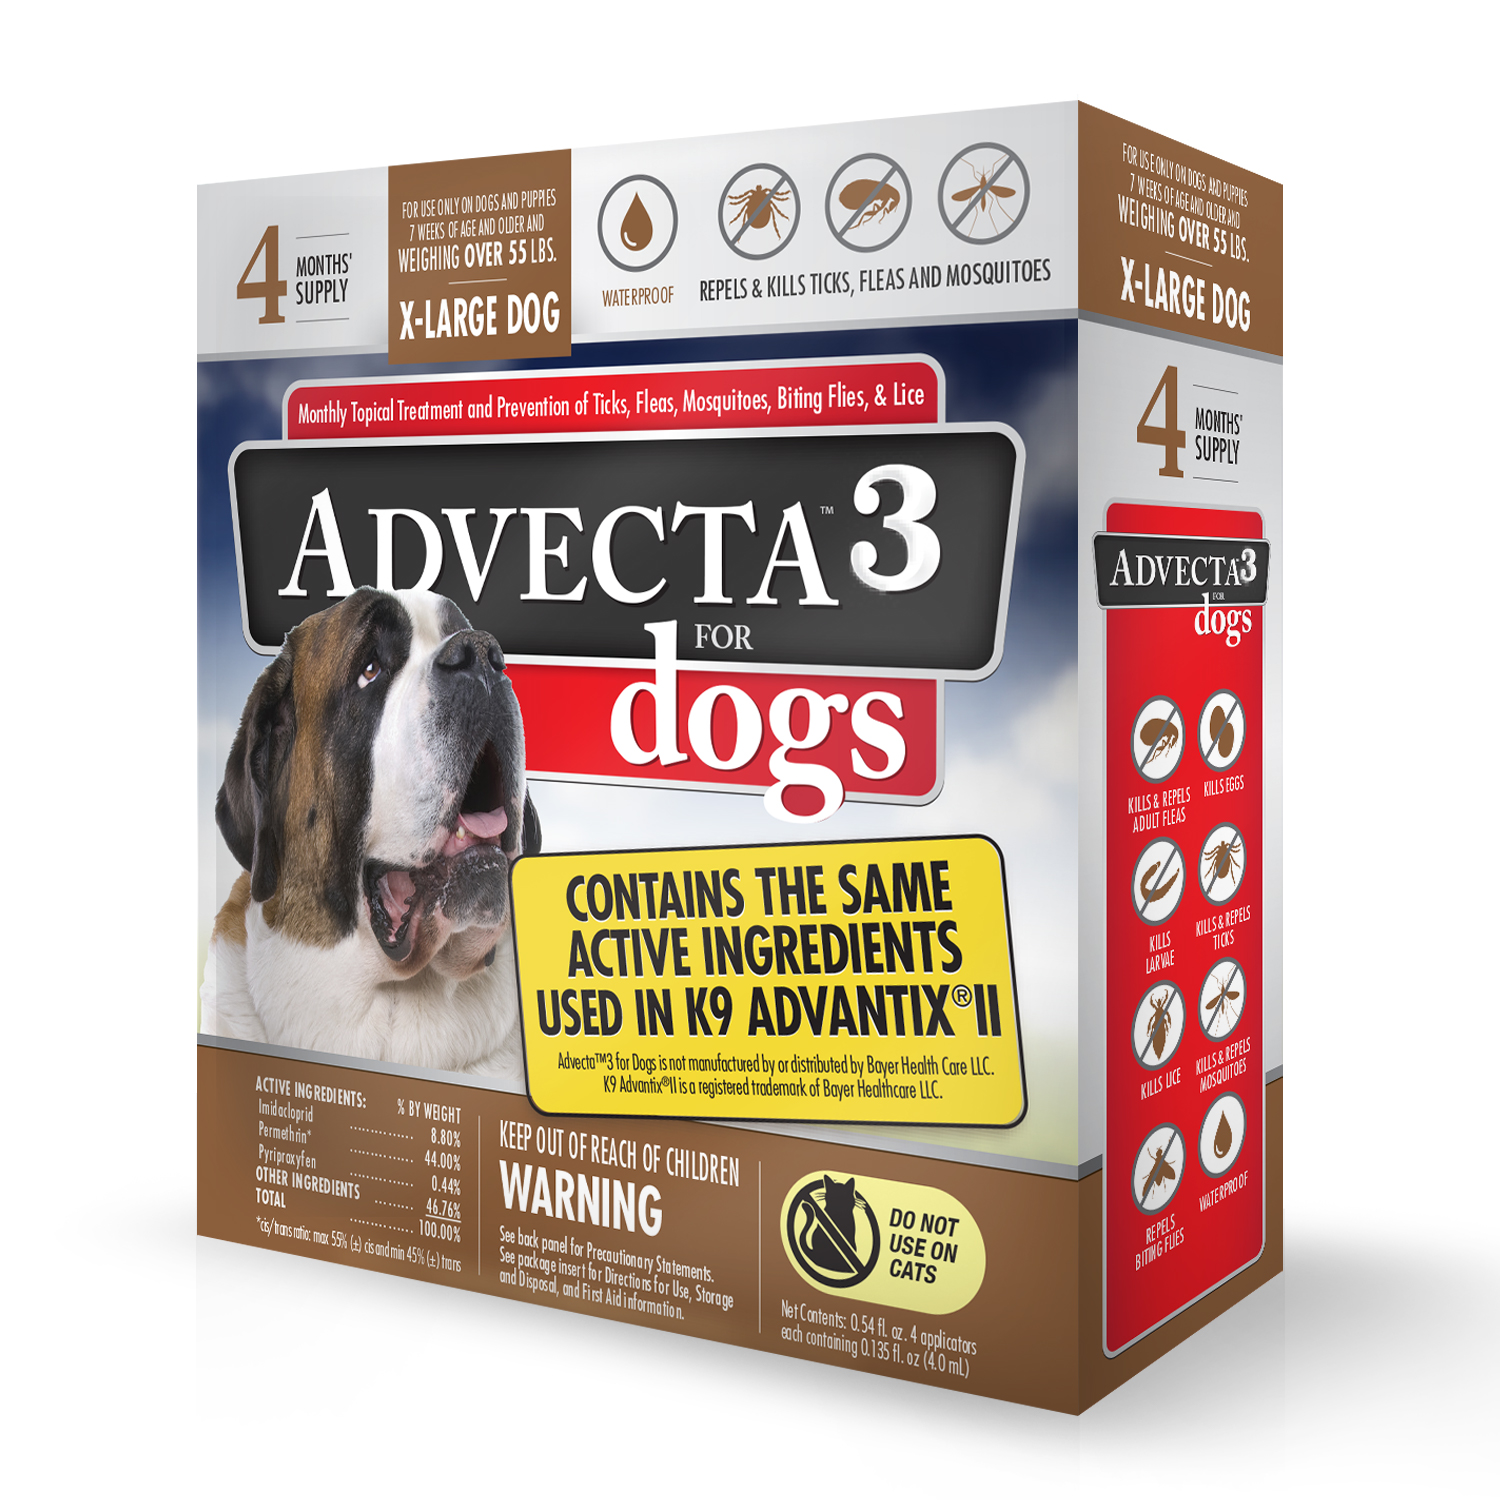 Advecta 3 Tick, Flea, and Mosquito Repellent and Treatment for Extra Large Dogs, 4 Monthly Doses